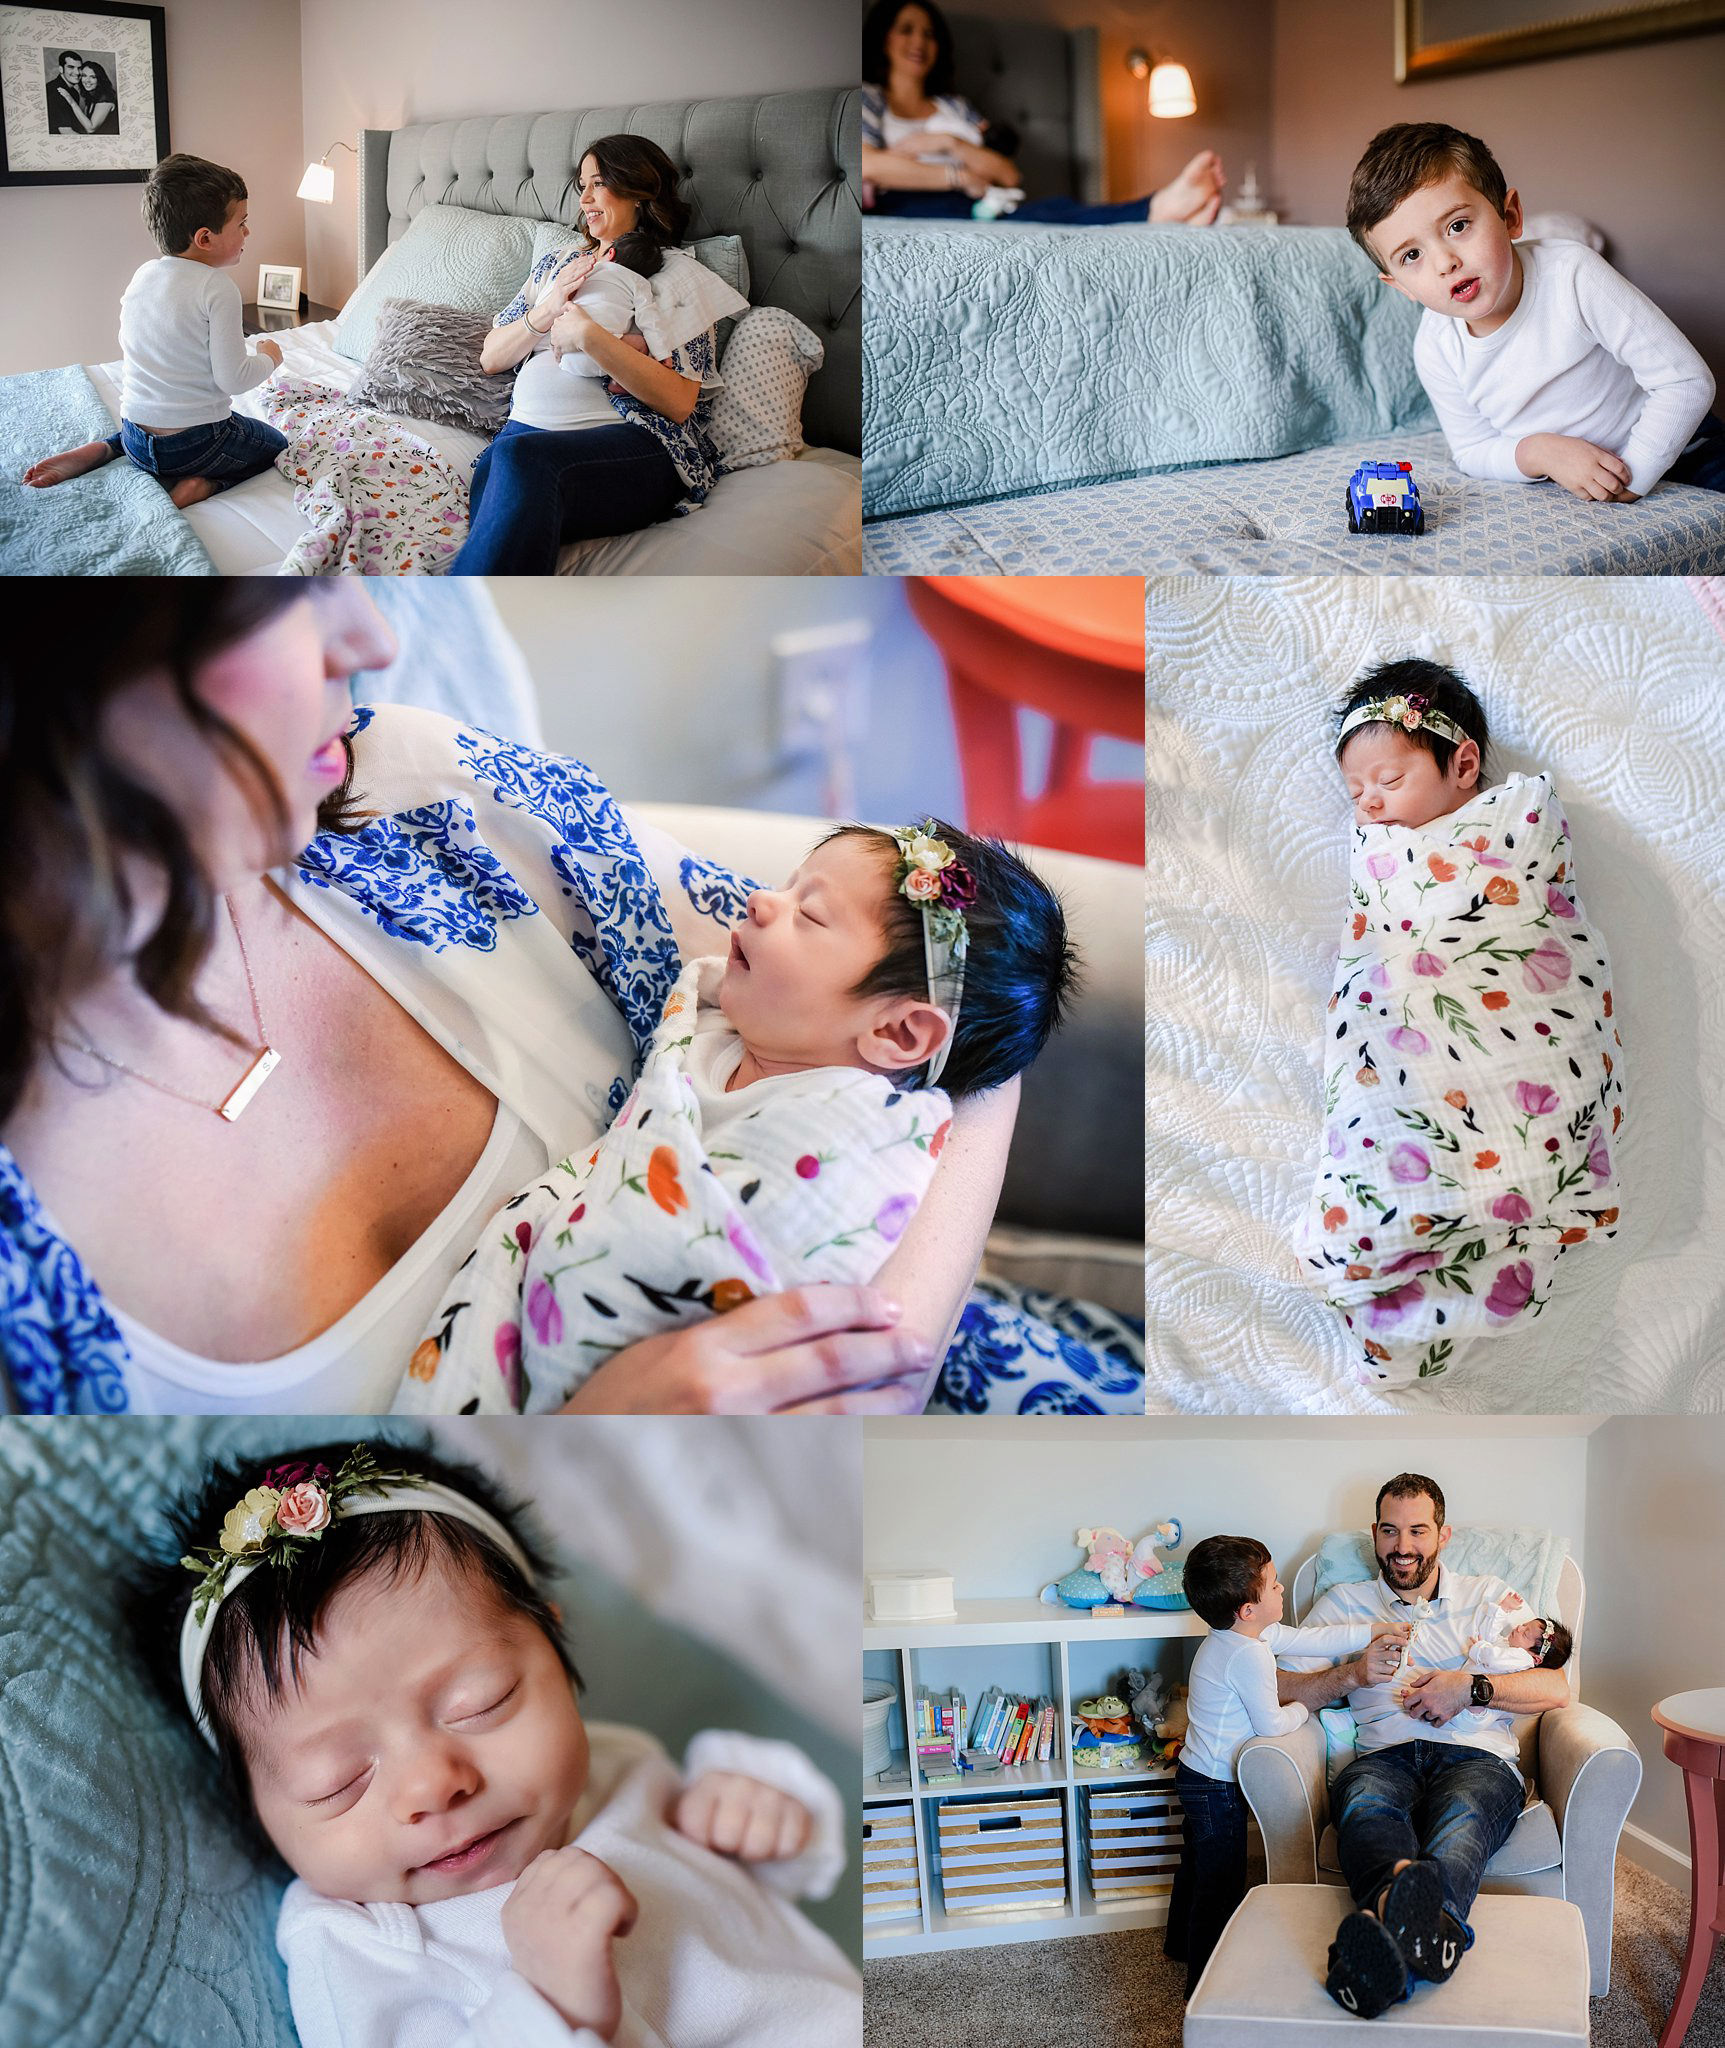 at-home-session-virginia-beach-newborn-lifestyle-photographer-melissa-bliss-photograpy.jpg